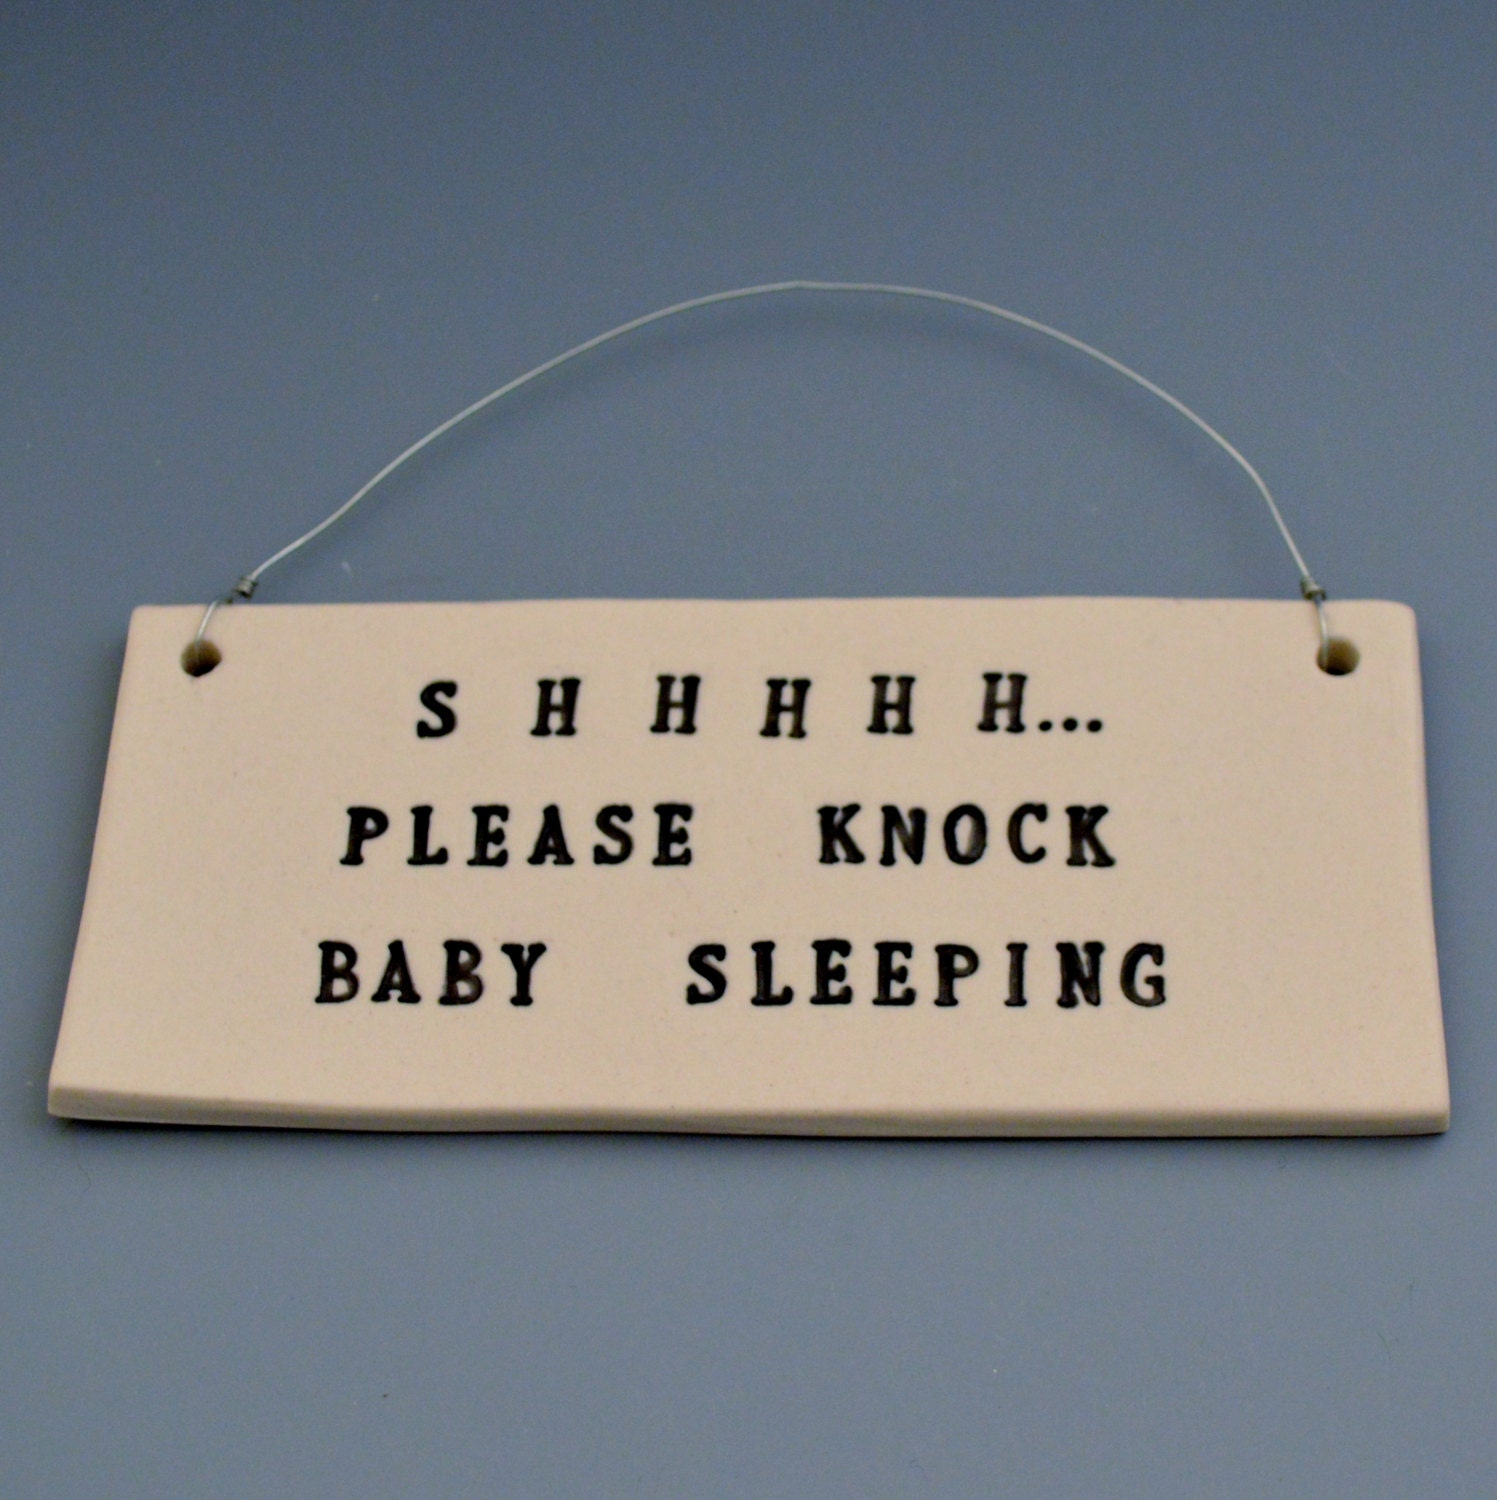 Shhhhh... Please Knock Baby Sleeping - Black and White Porcelain Tile #4